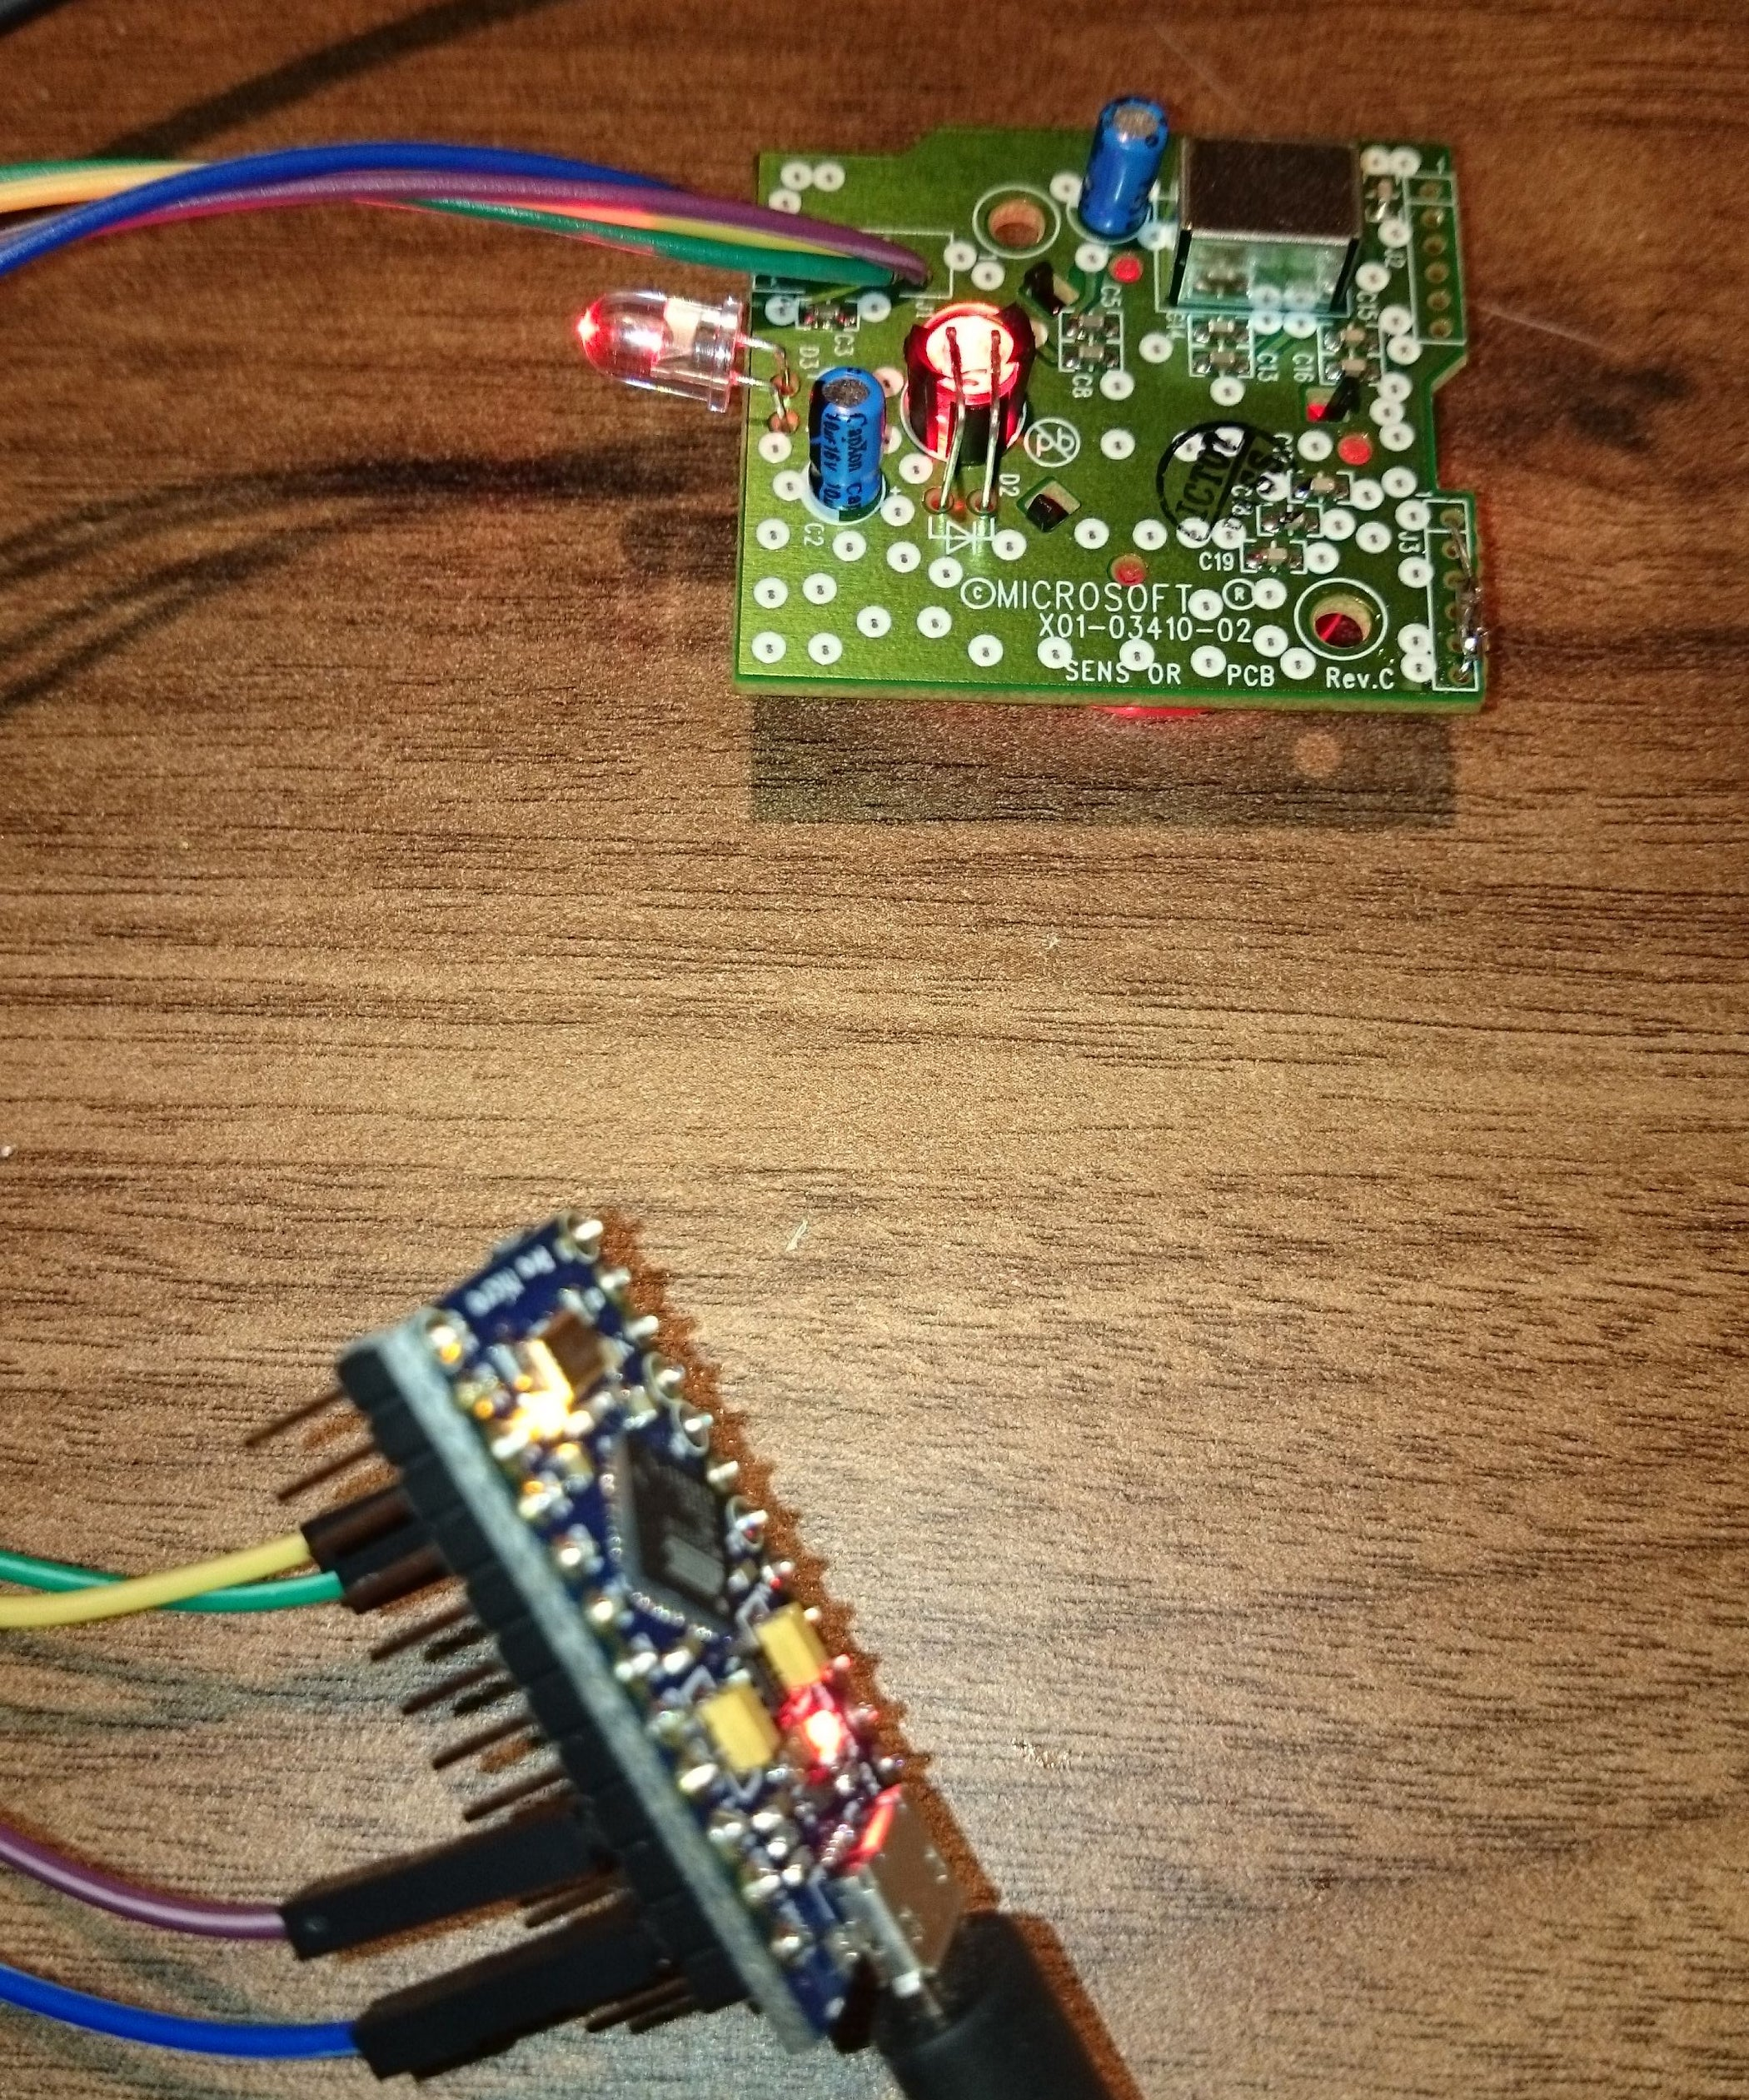 Optical Mouse Odometer For Arduino Robot 4 Steps With Pictures Interface Circuit And Method Sensor System